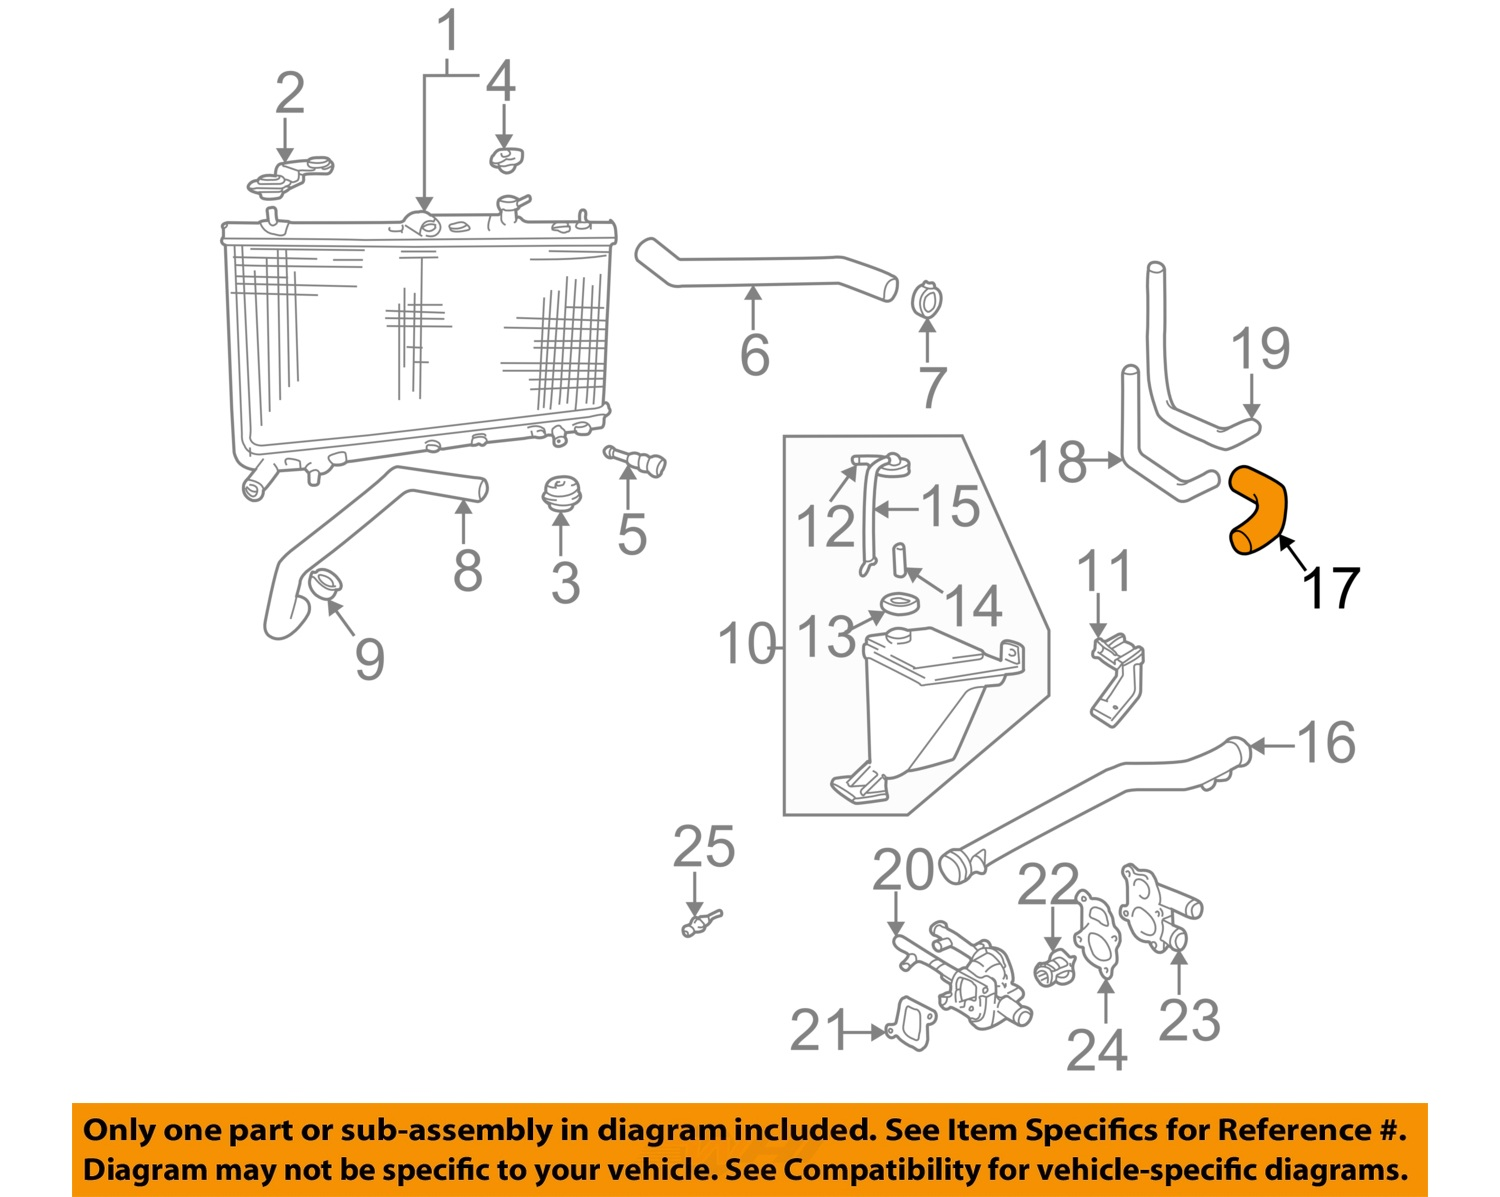 2004 hyundai accent headlight wiring diagram Images Gallery